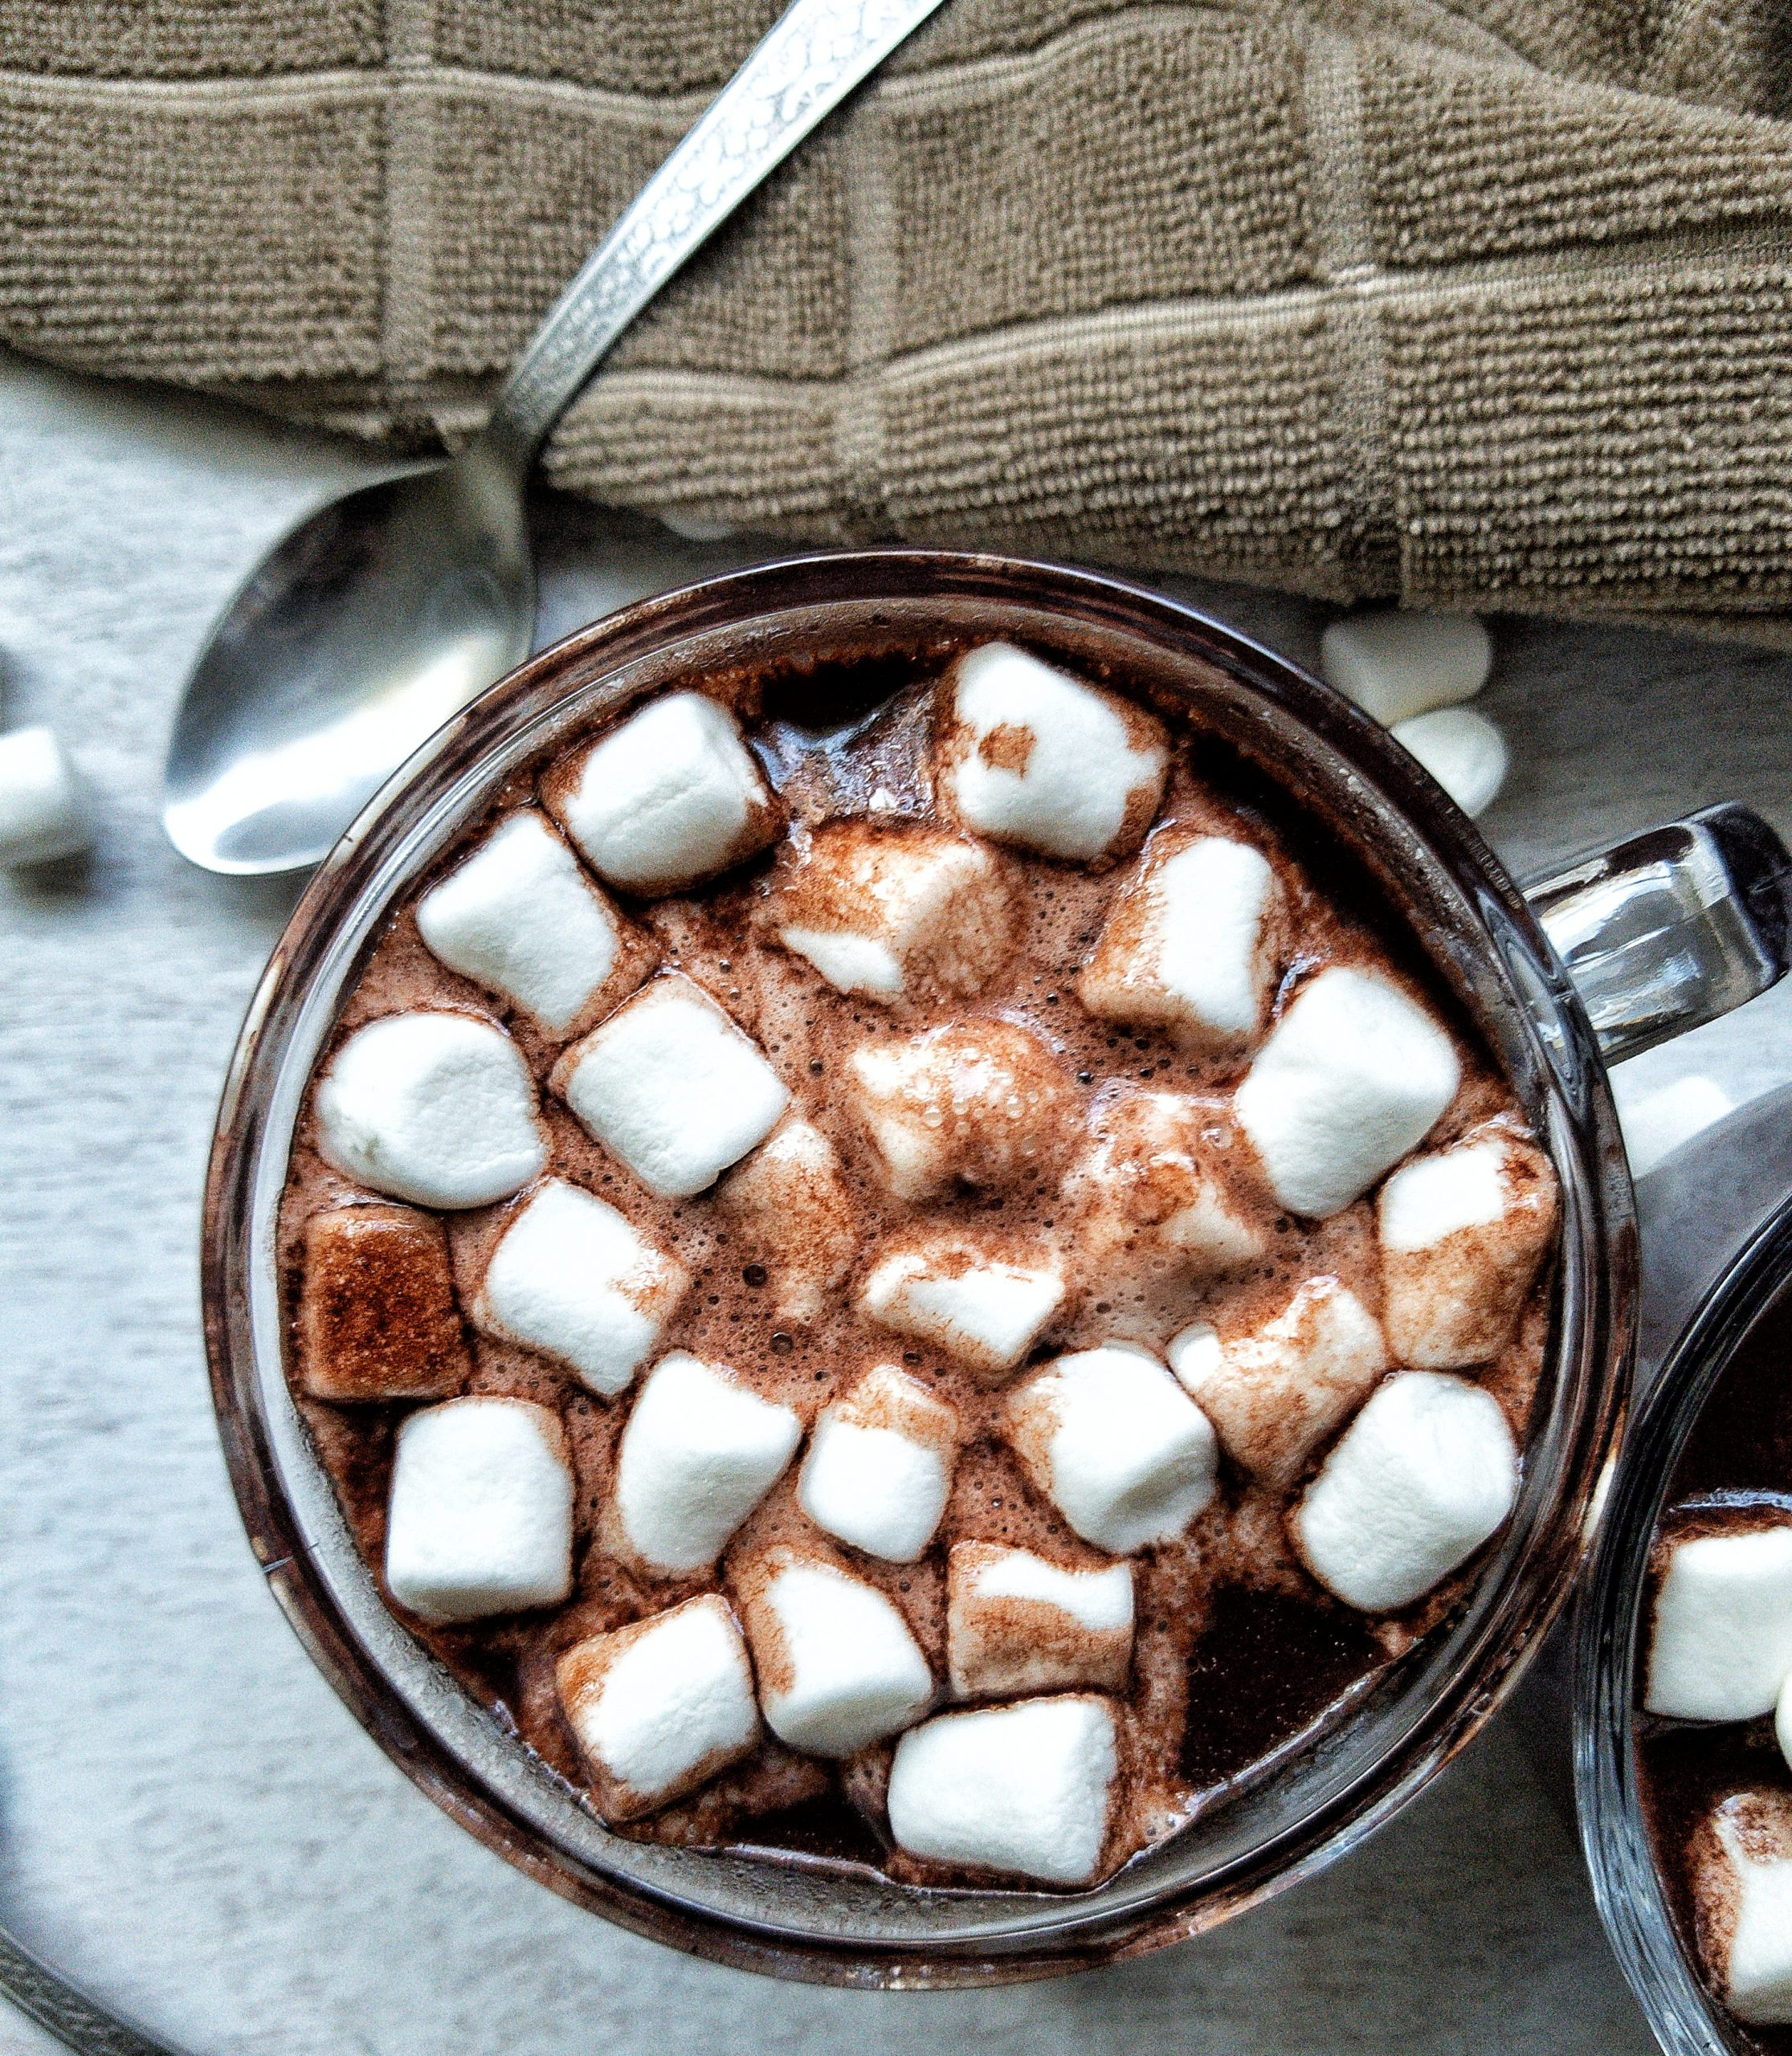 Close-up of one glass mug with hot chocolate topped with marshmallows